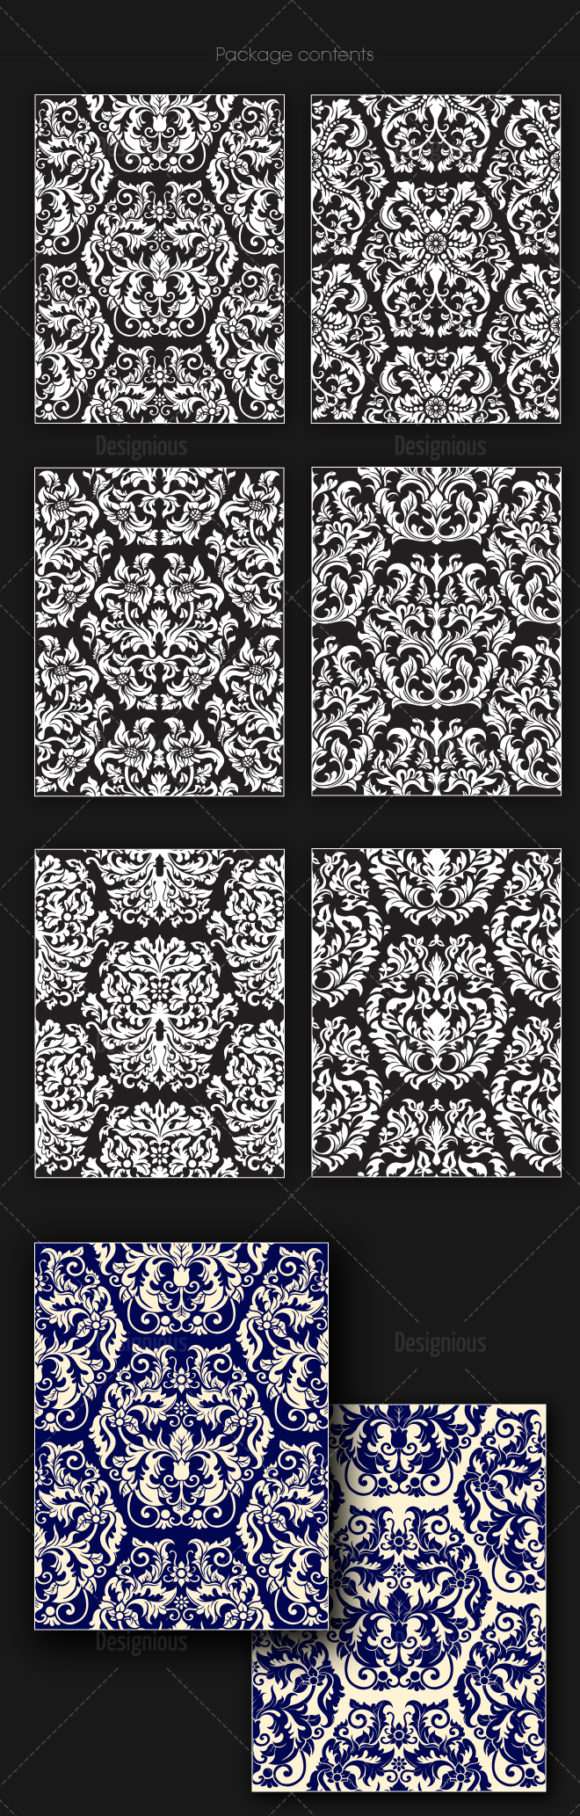 Seamless Patterns Vector Pack 149 products designious vector seamless 149 large